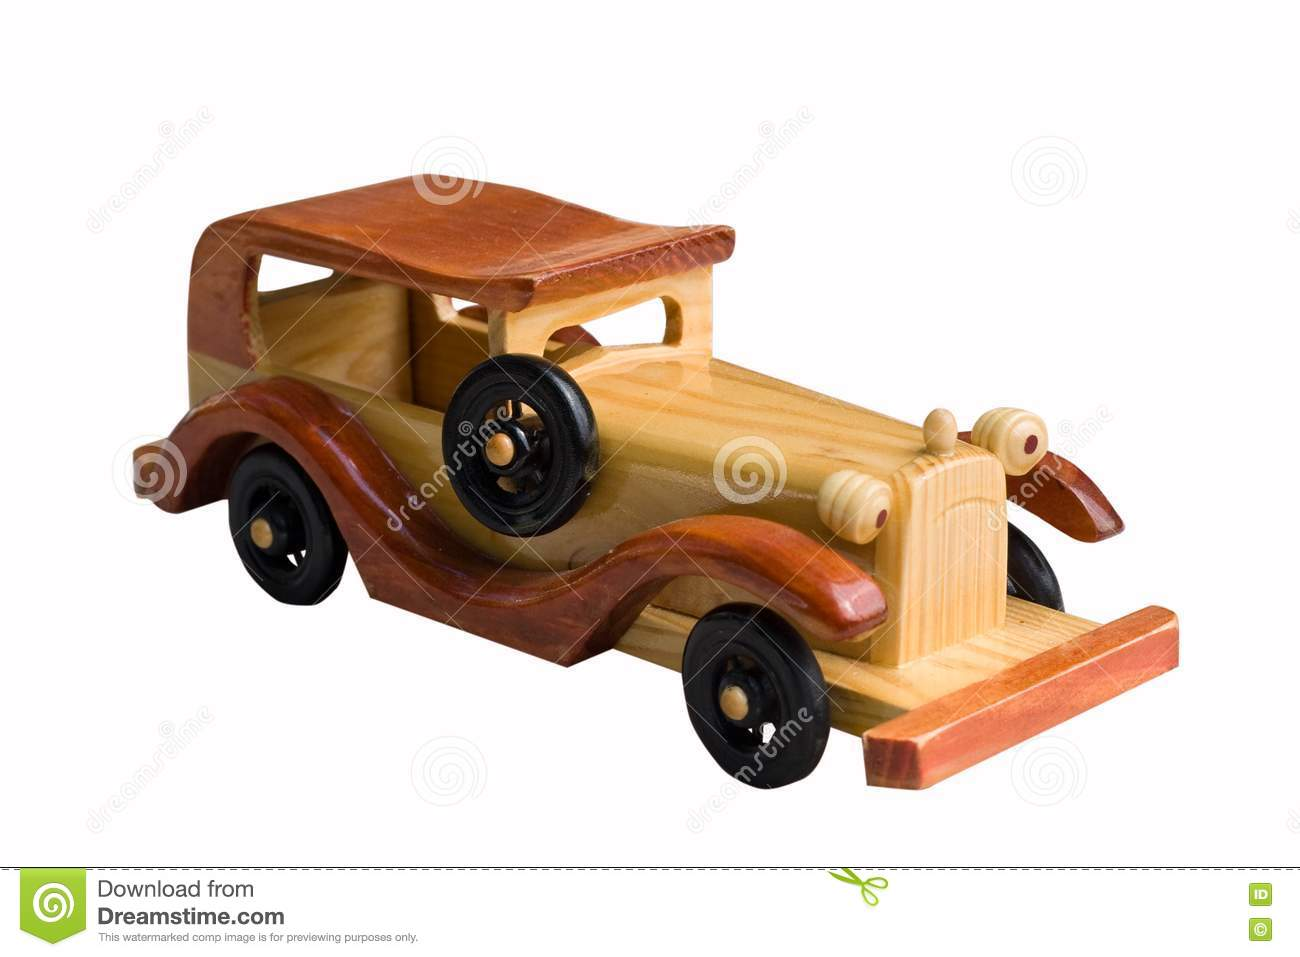 wooden toy plans free downloads | Woodworking Gift Ideas